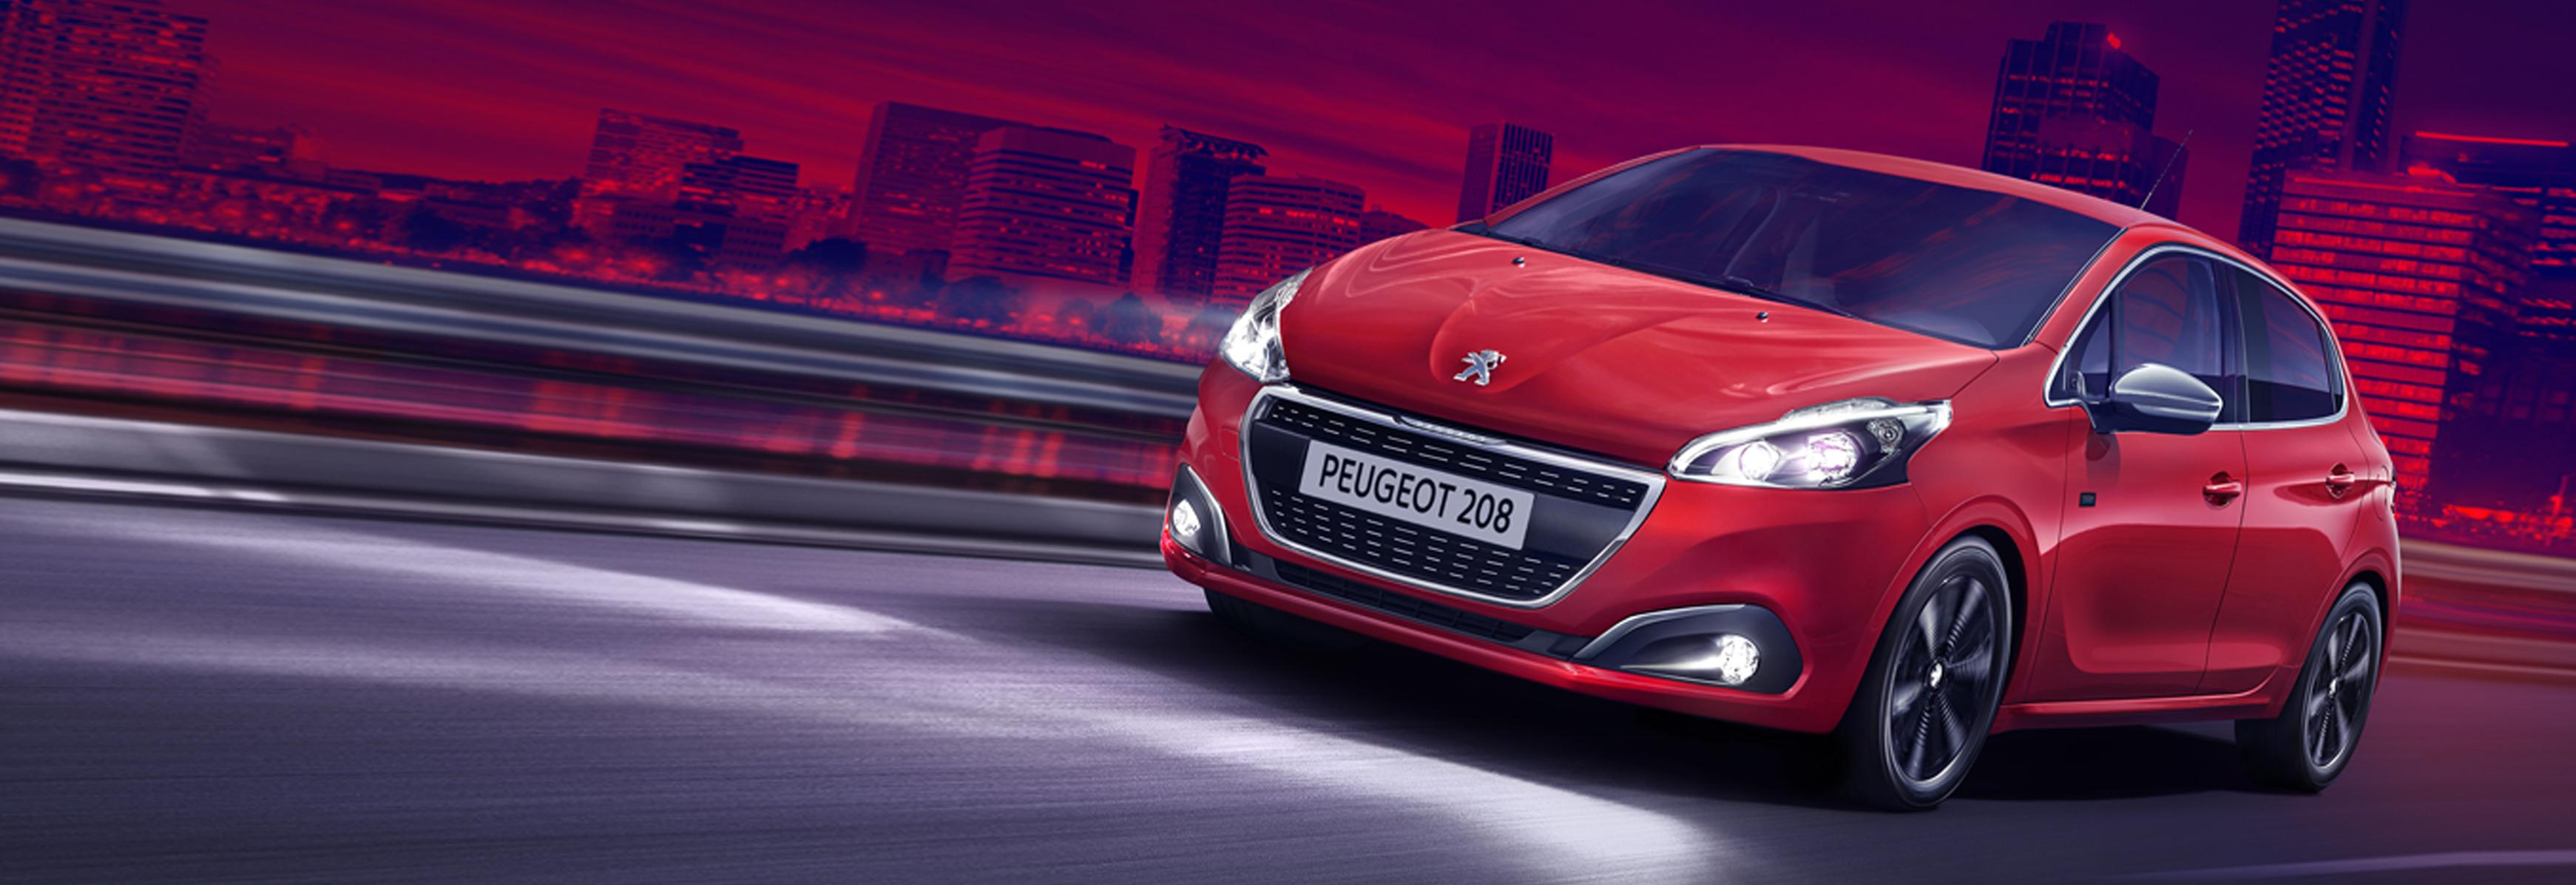 New Peugeot 208 for £179 per Month